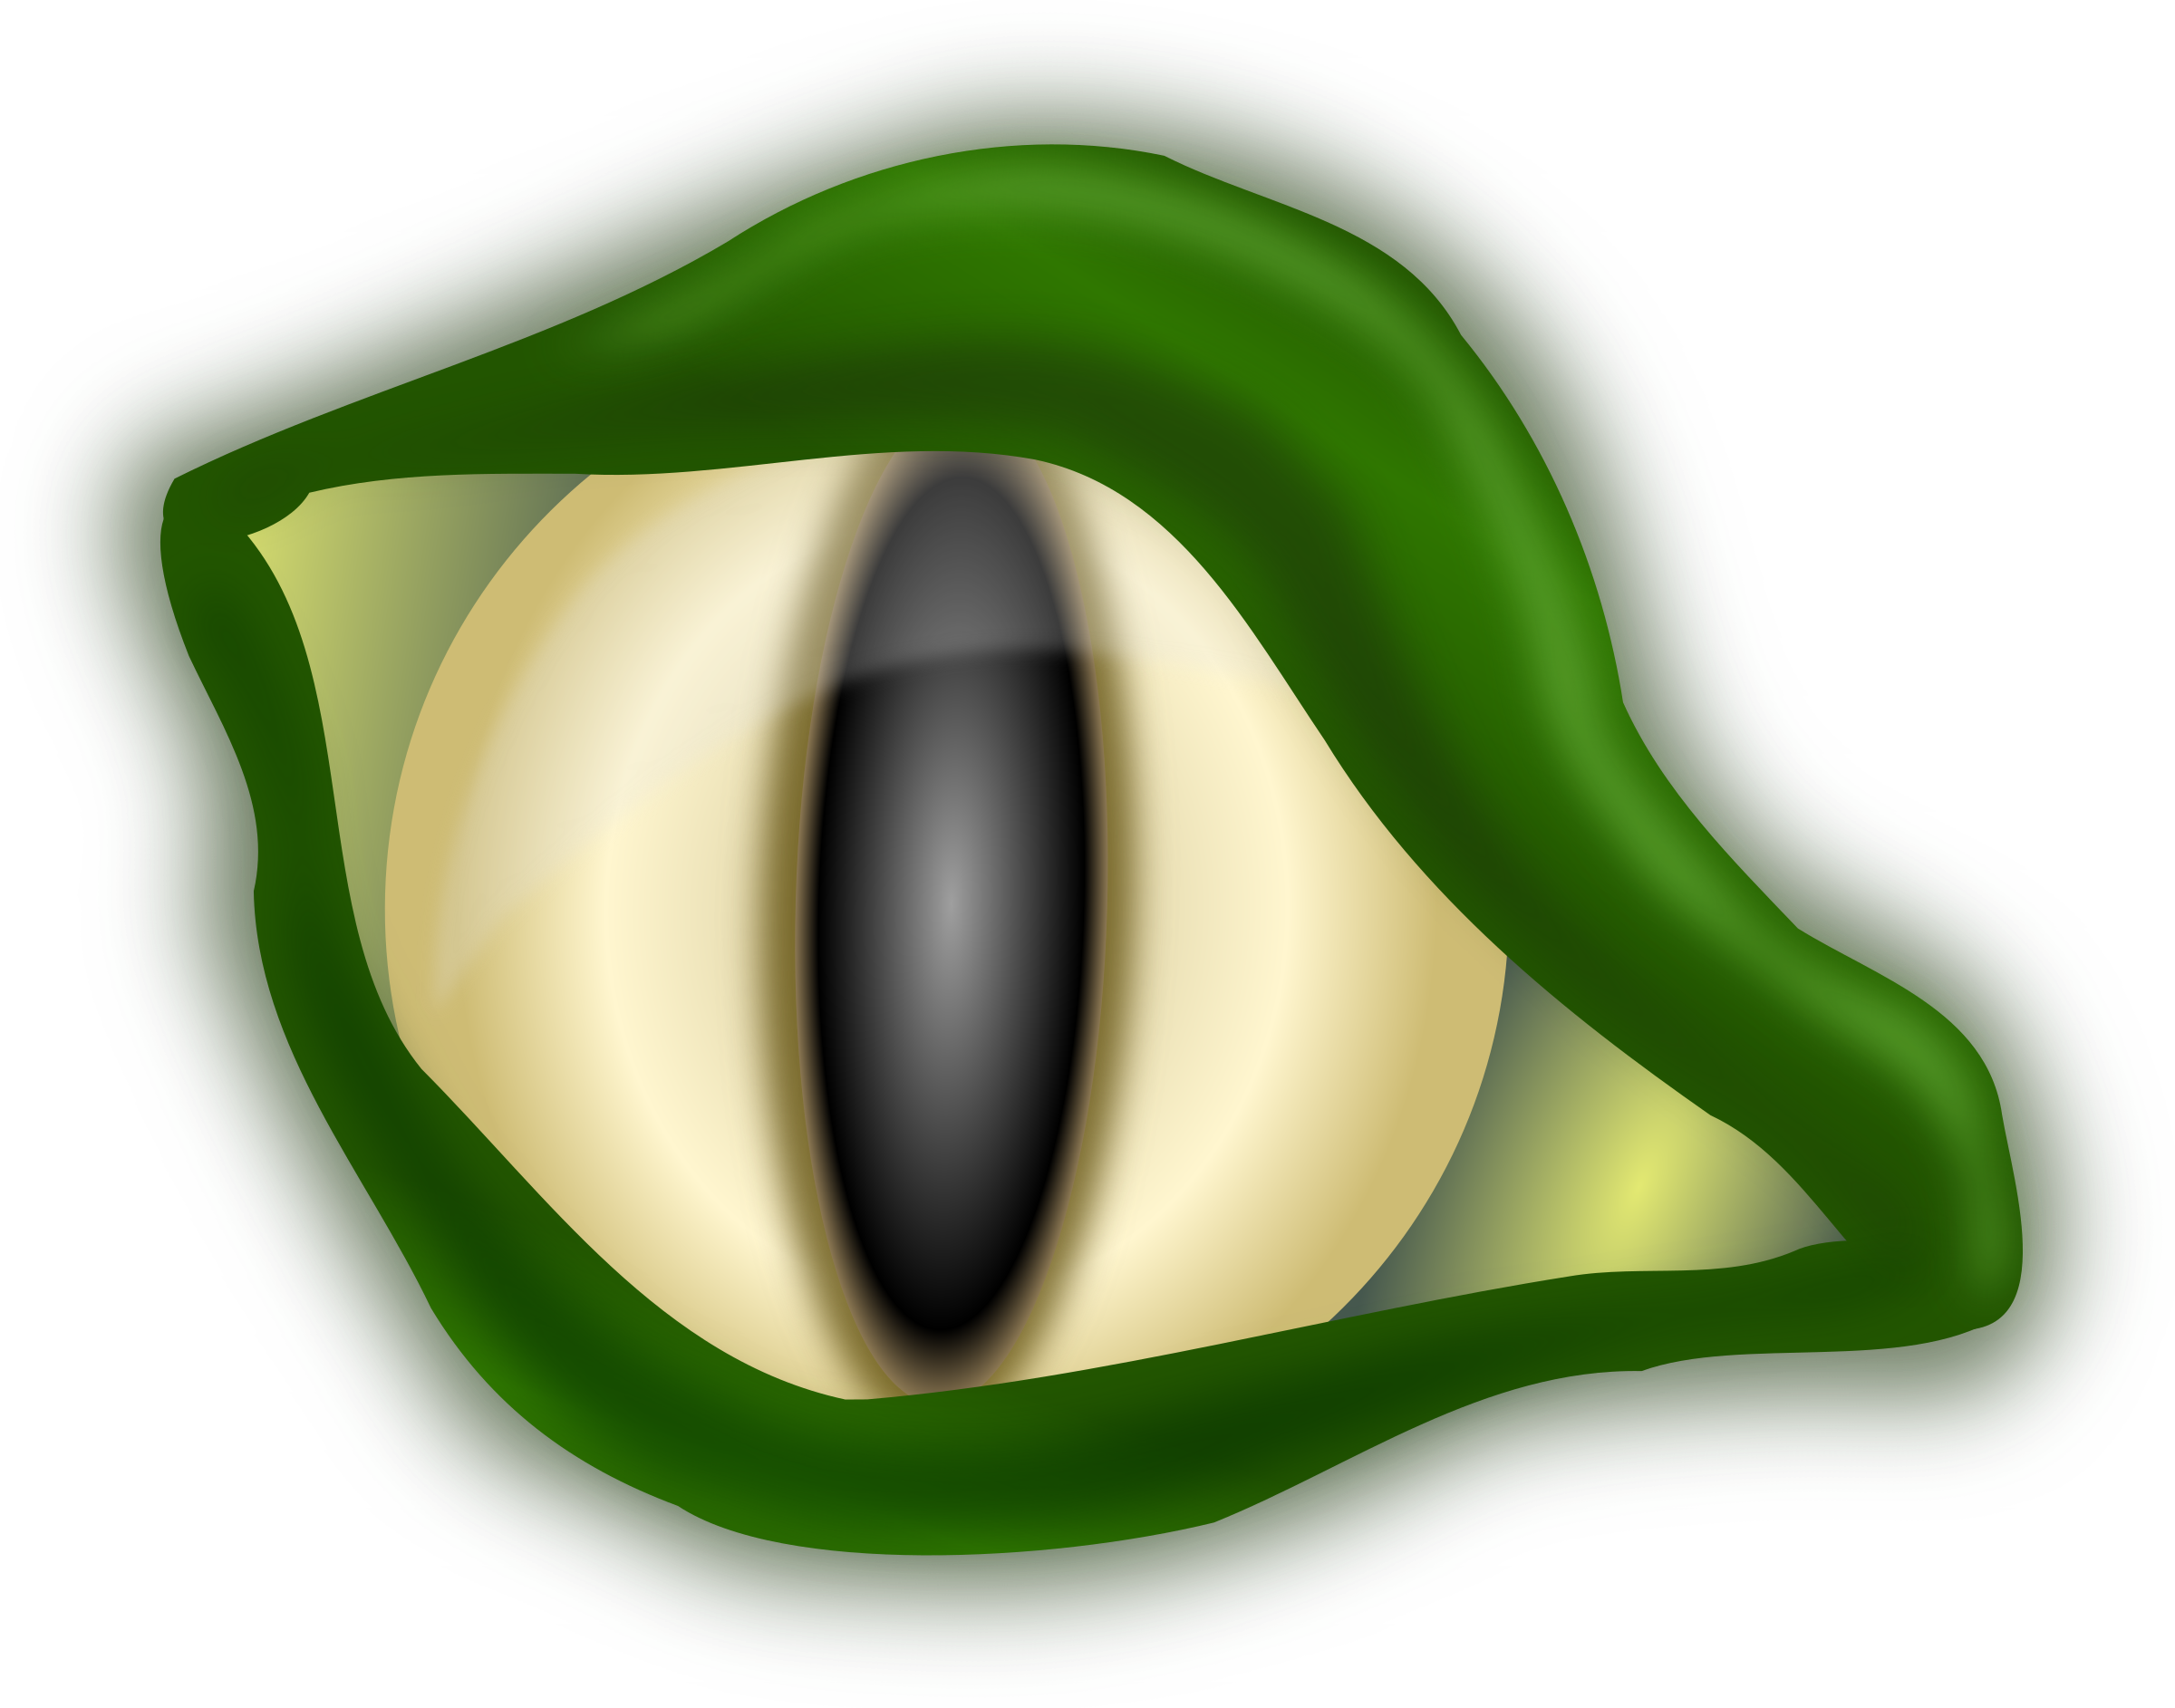 Eyes clipart alligator.  collection of high